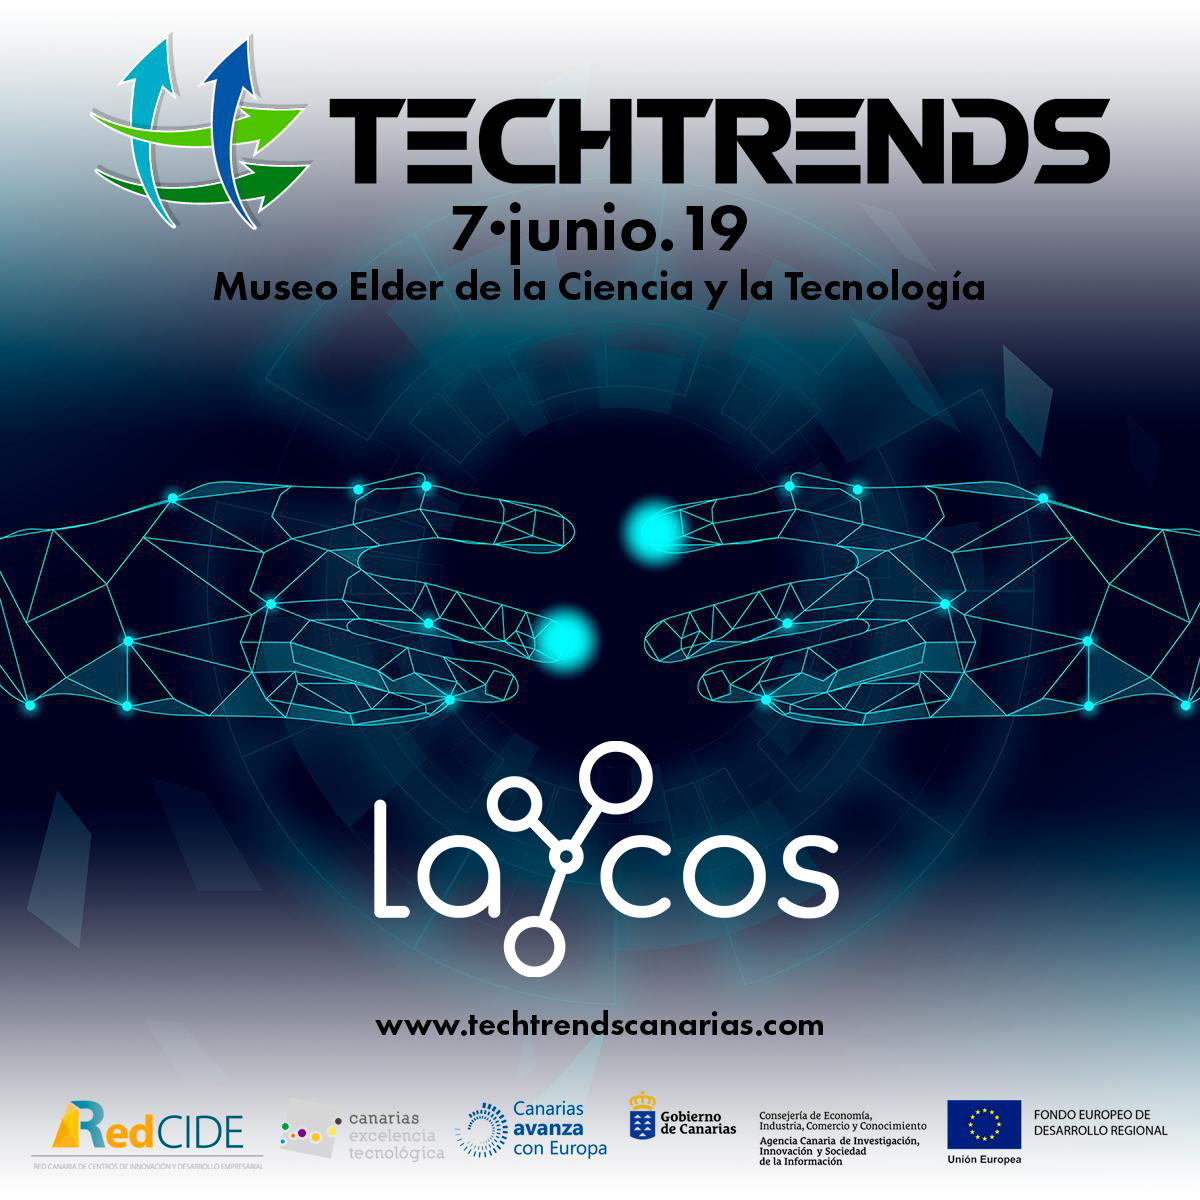 techtrends_laycos--1-